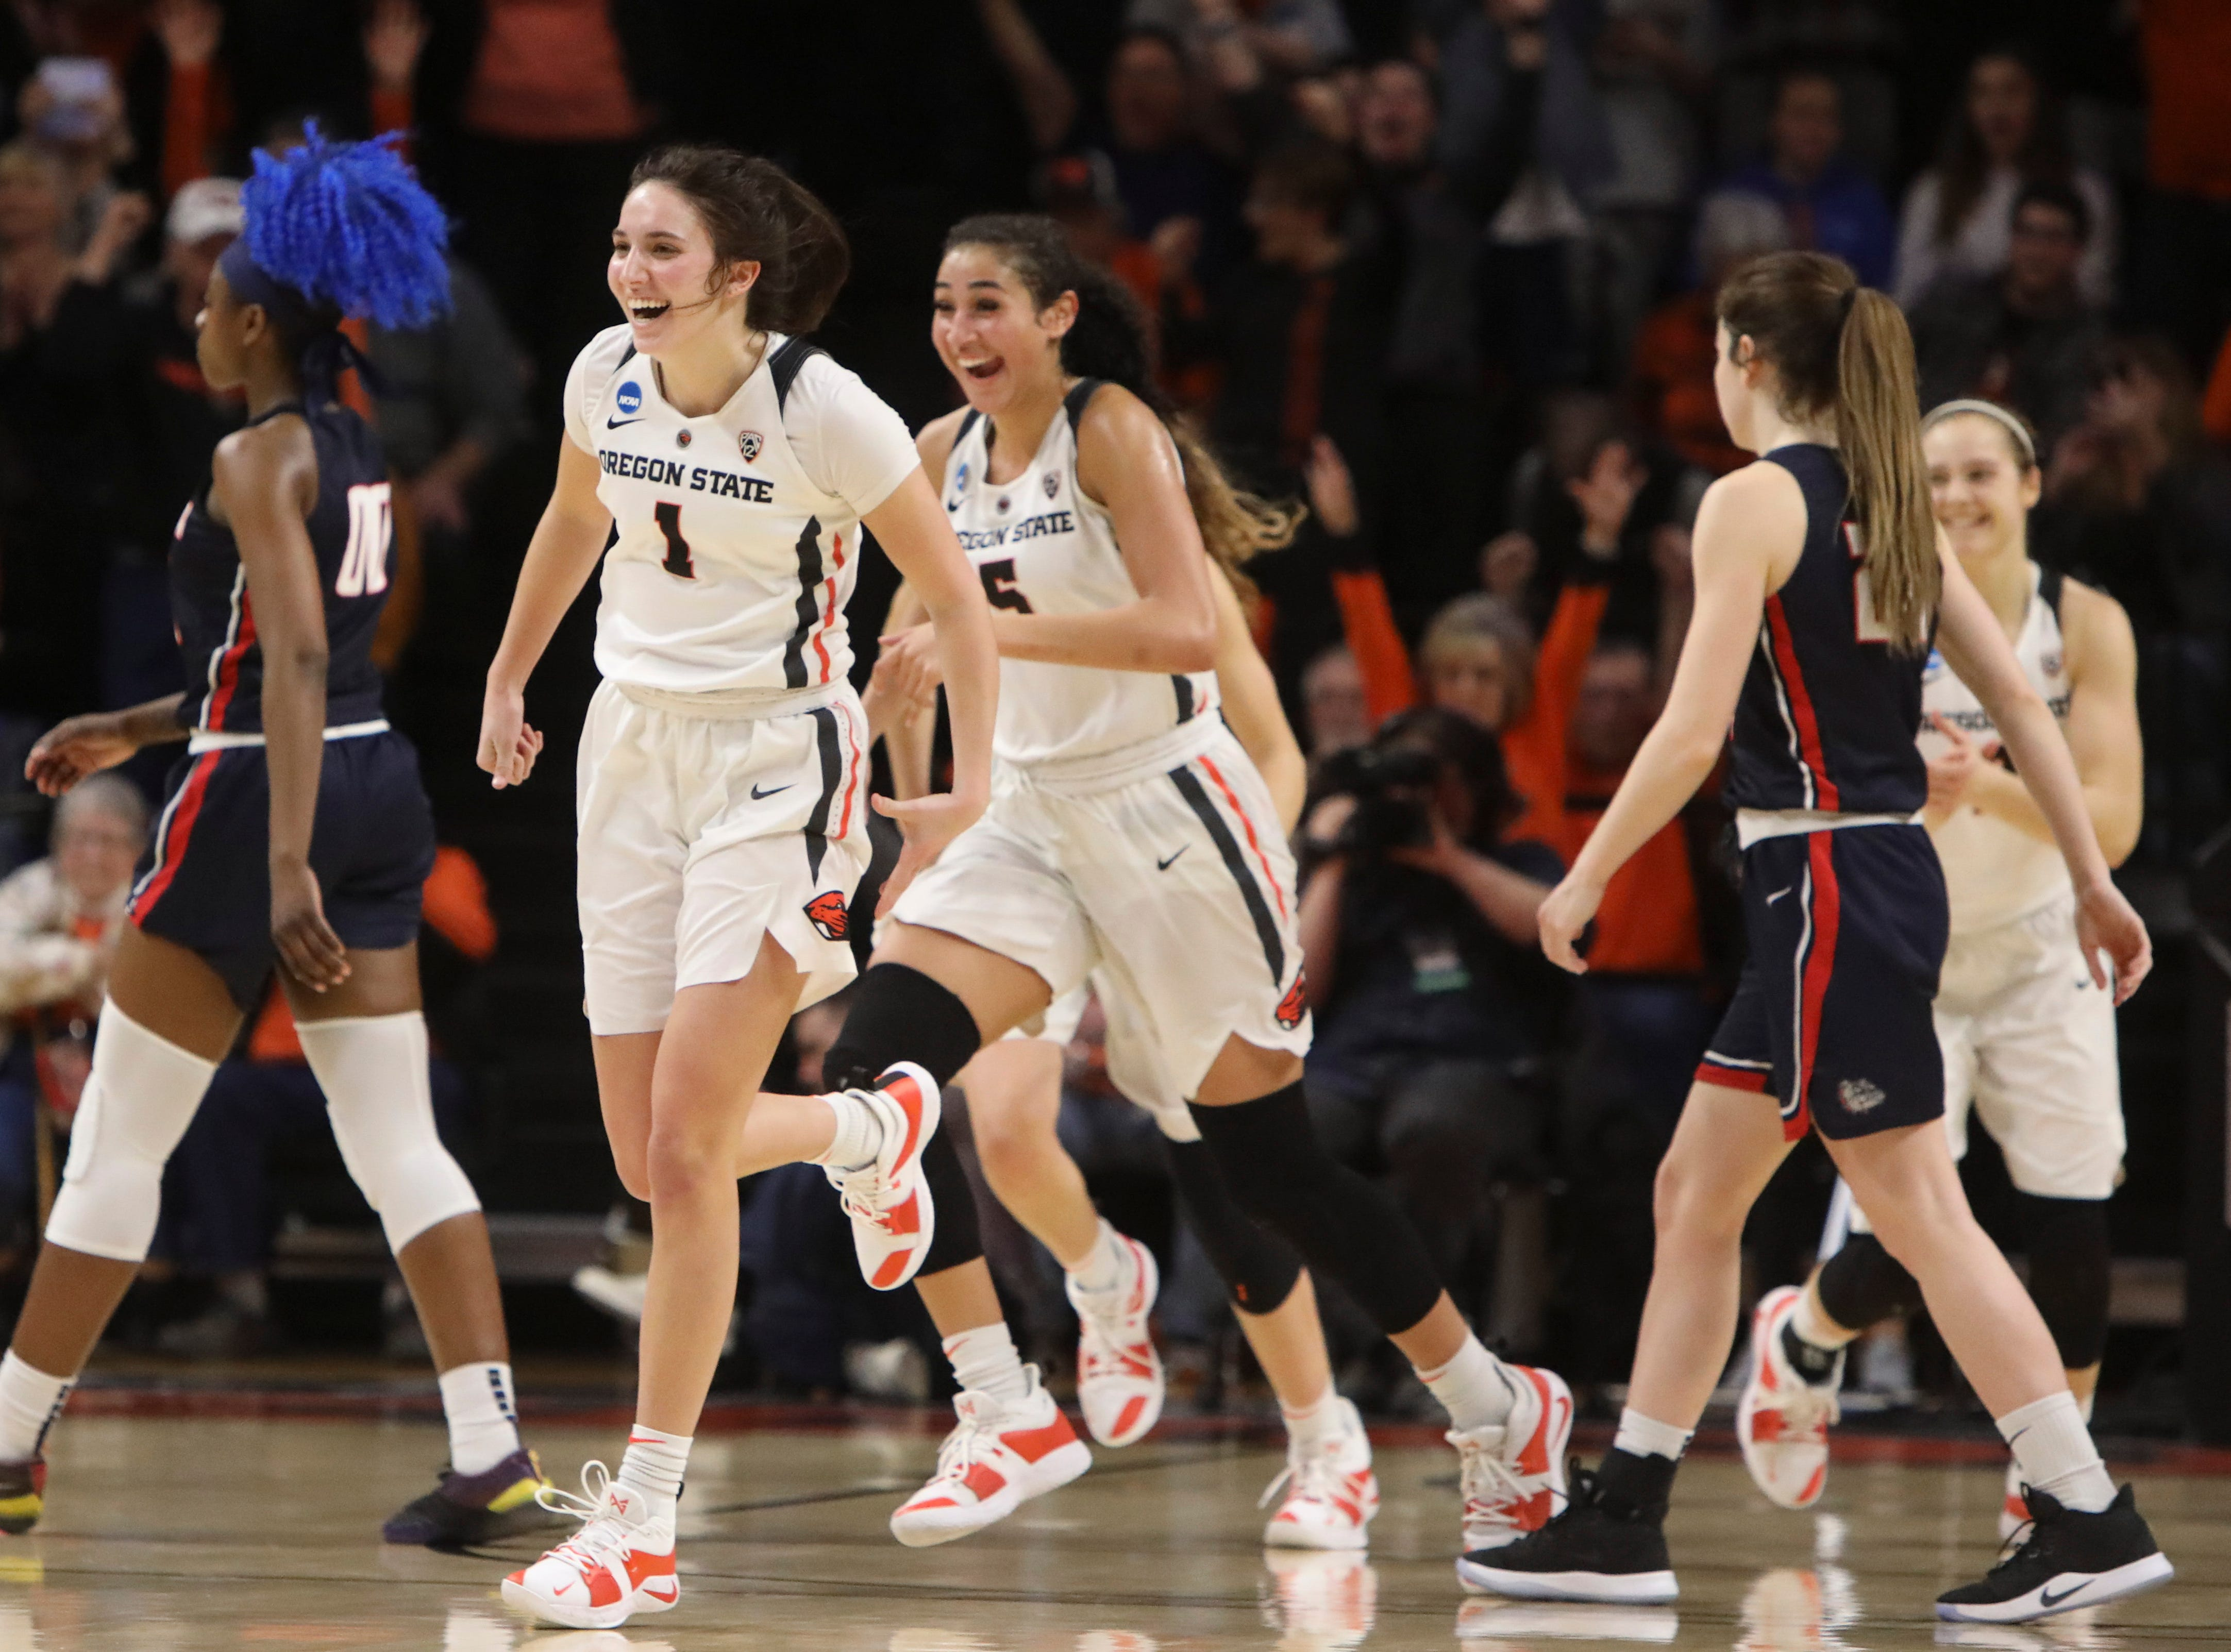 Oregon State's Aleah Goodman (1) and Taya Corosdale (5) run toward their teammates after the team's 76-70 victory over Gonzaga in a second-round game of the NCAA women's college basketball tournament in Corvallis, Ore., Monday, March 25, 2019. (AP Photo/Amanda Loman)